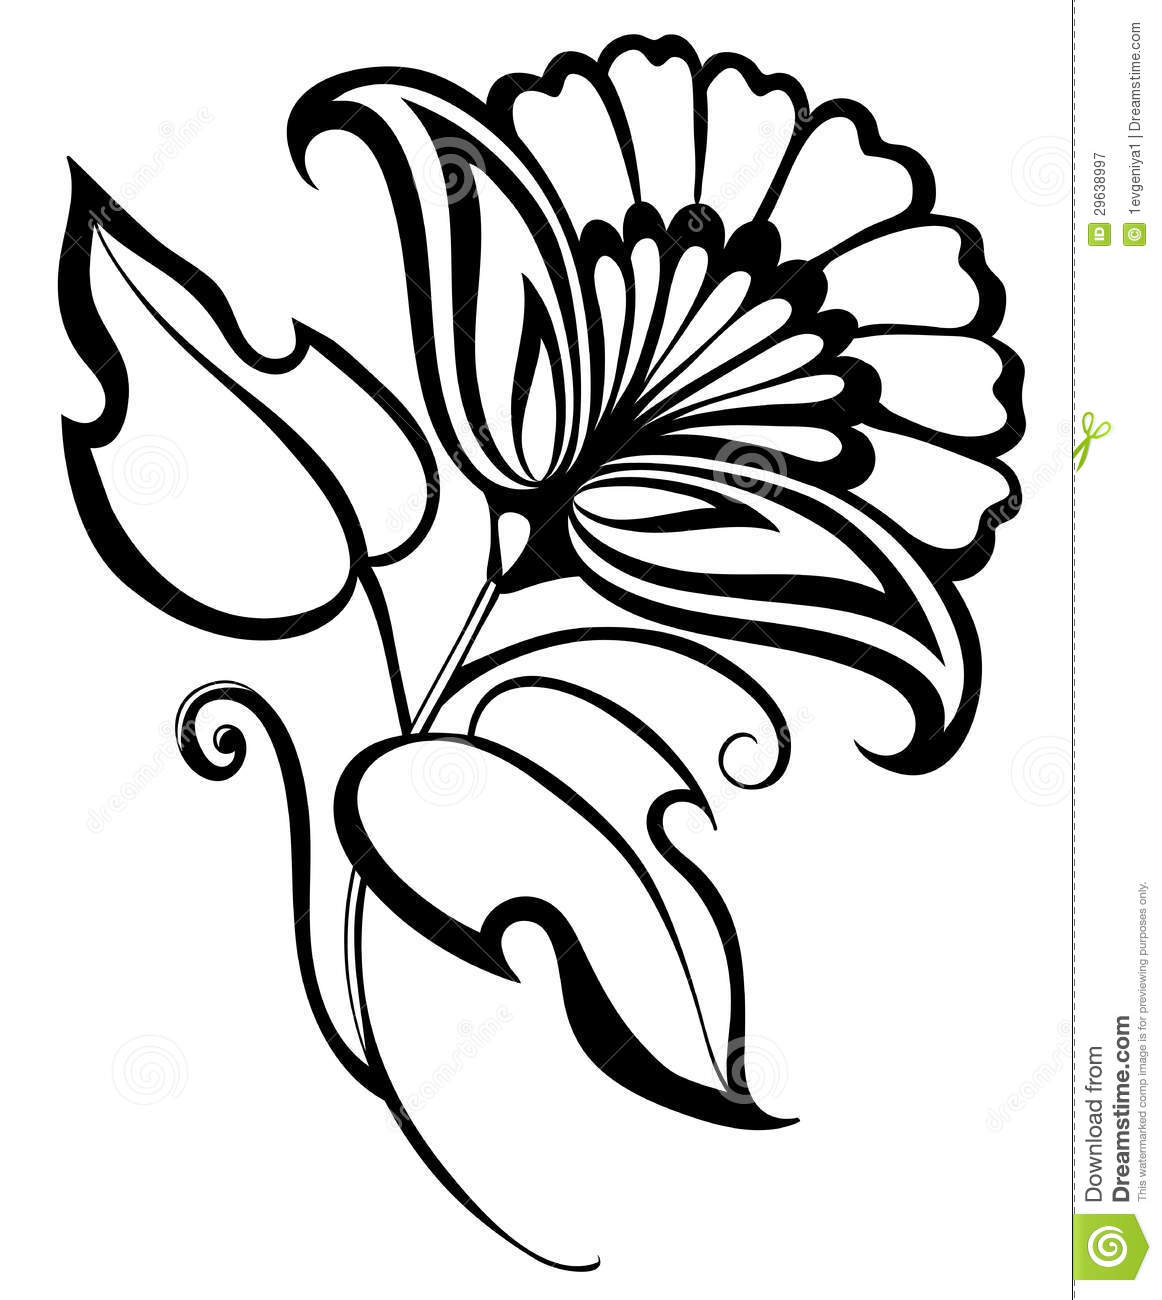 1162x1300 Black And White Flowers Drawings Beautiful Black And White Flower